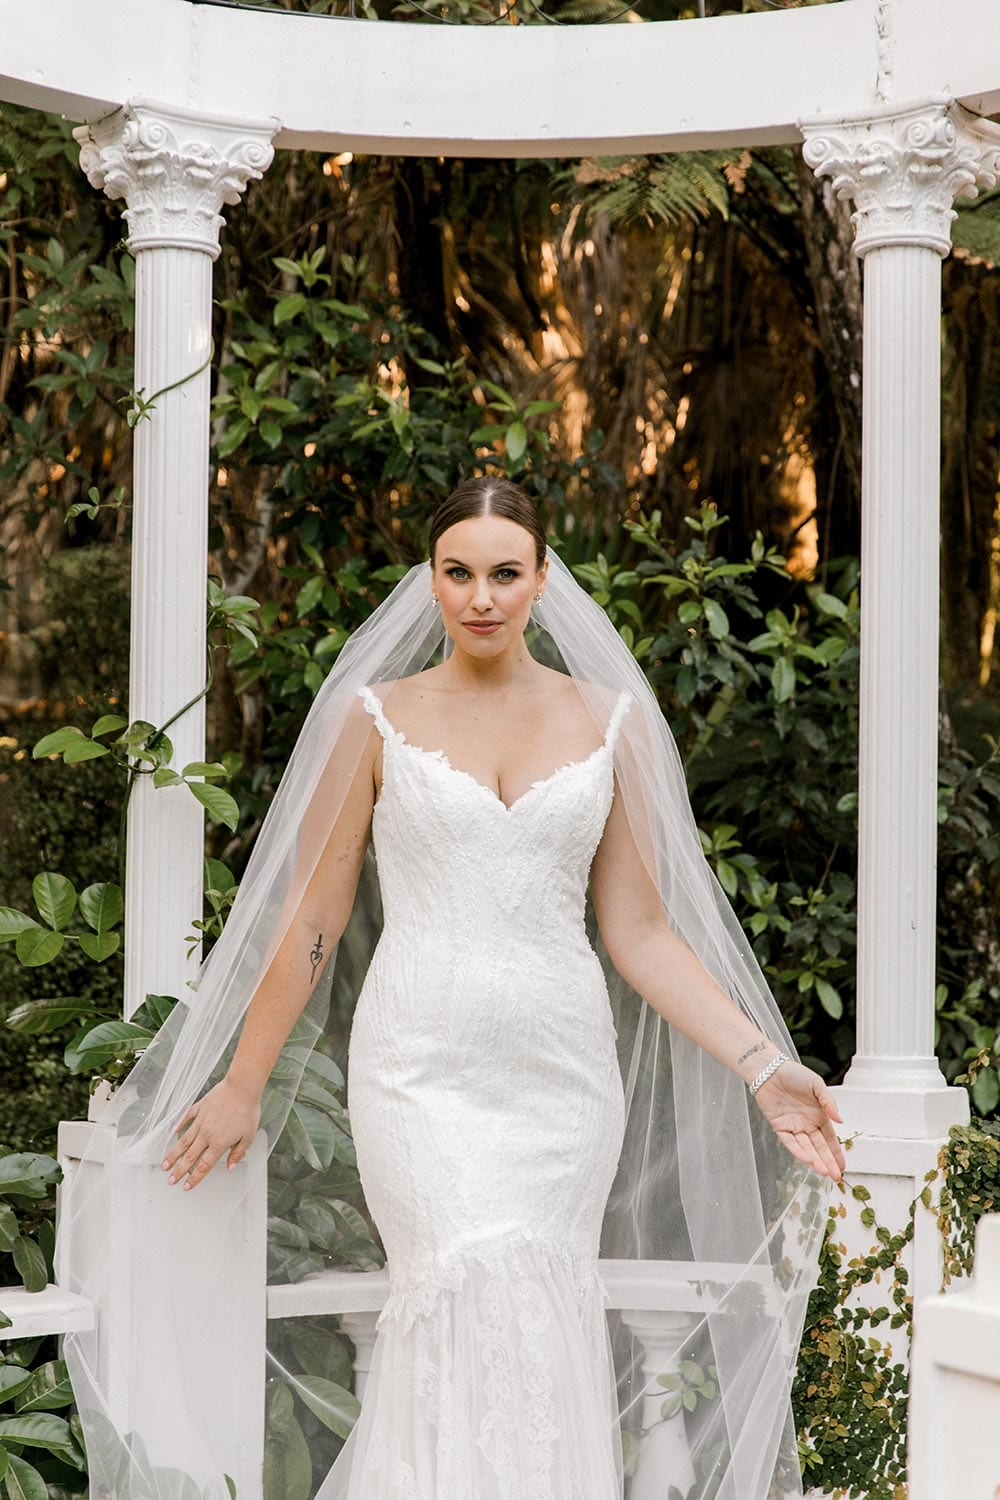 Brooke Wedding Dress from Vinka Design. This stunning wedding dress has a structured bodice intricately layered to emphasize natural curves. Sweetheart neckline, delicate lace-embellished straps, low back & silk chiffon train. Front of dress portrait, photographed at Tui Hills by Emmaline Photography.